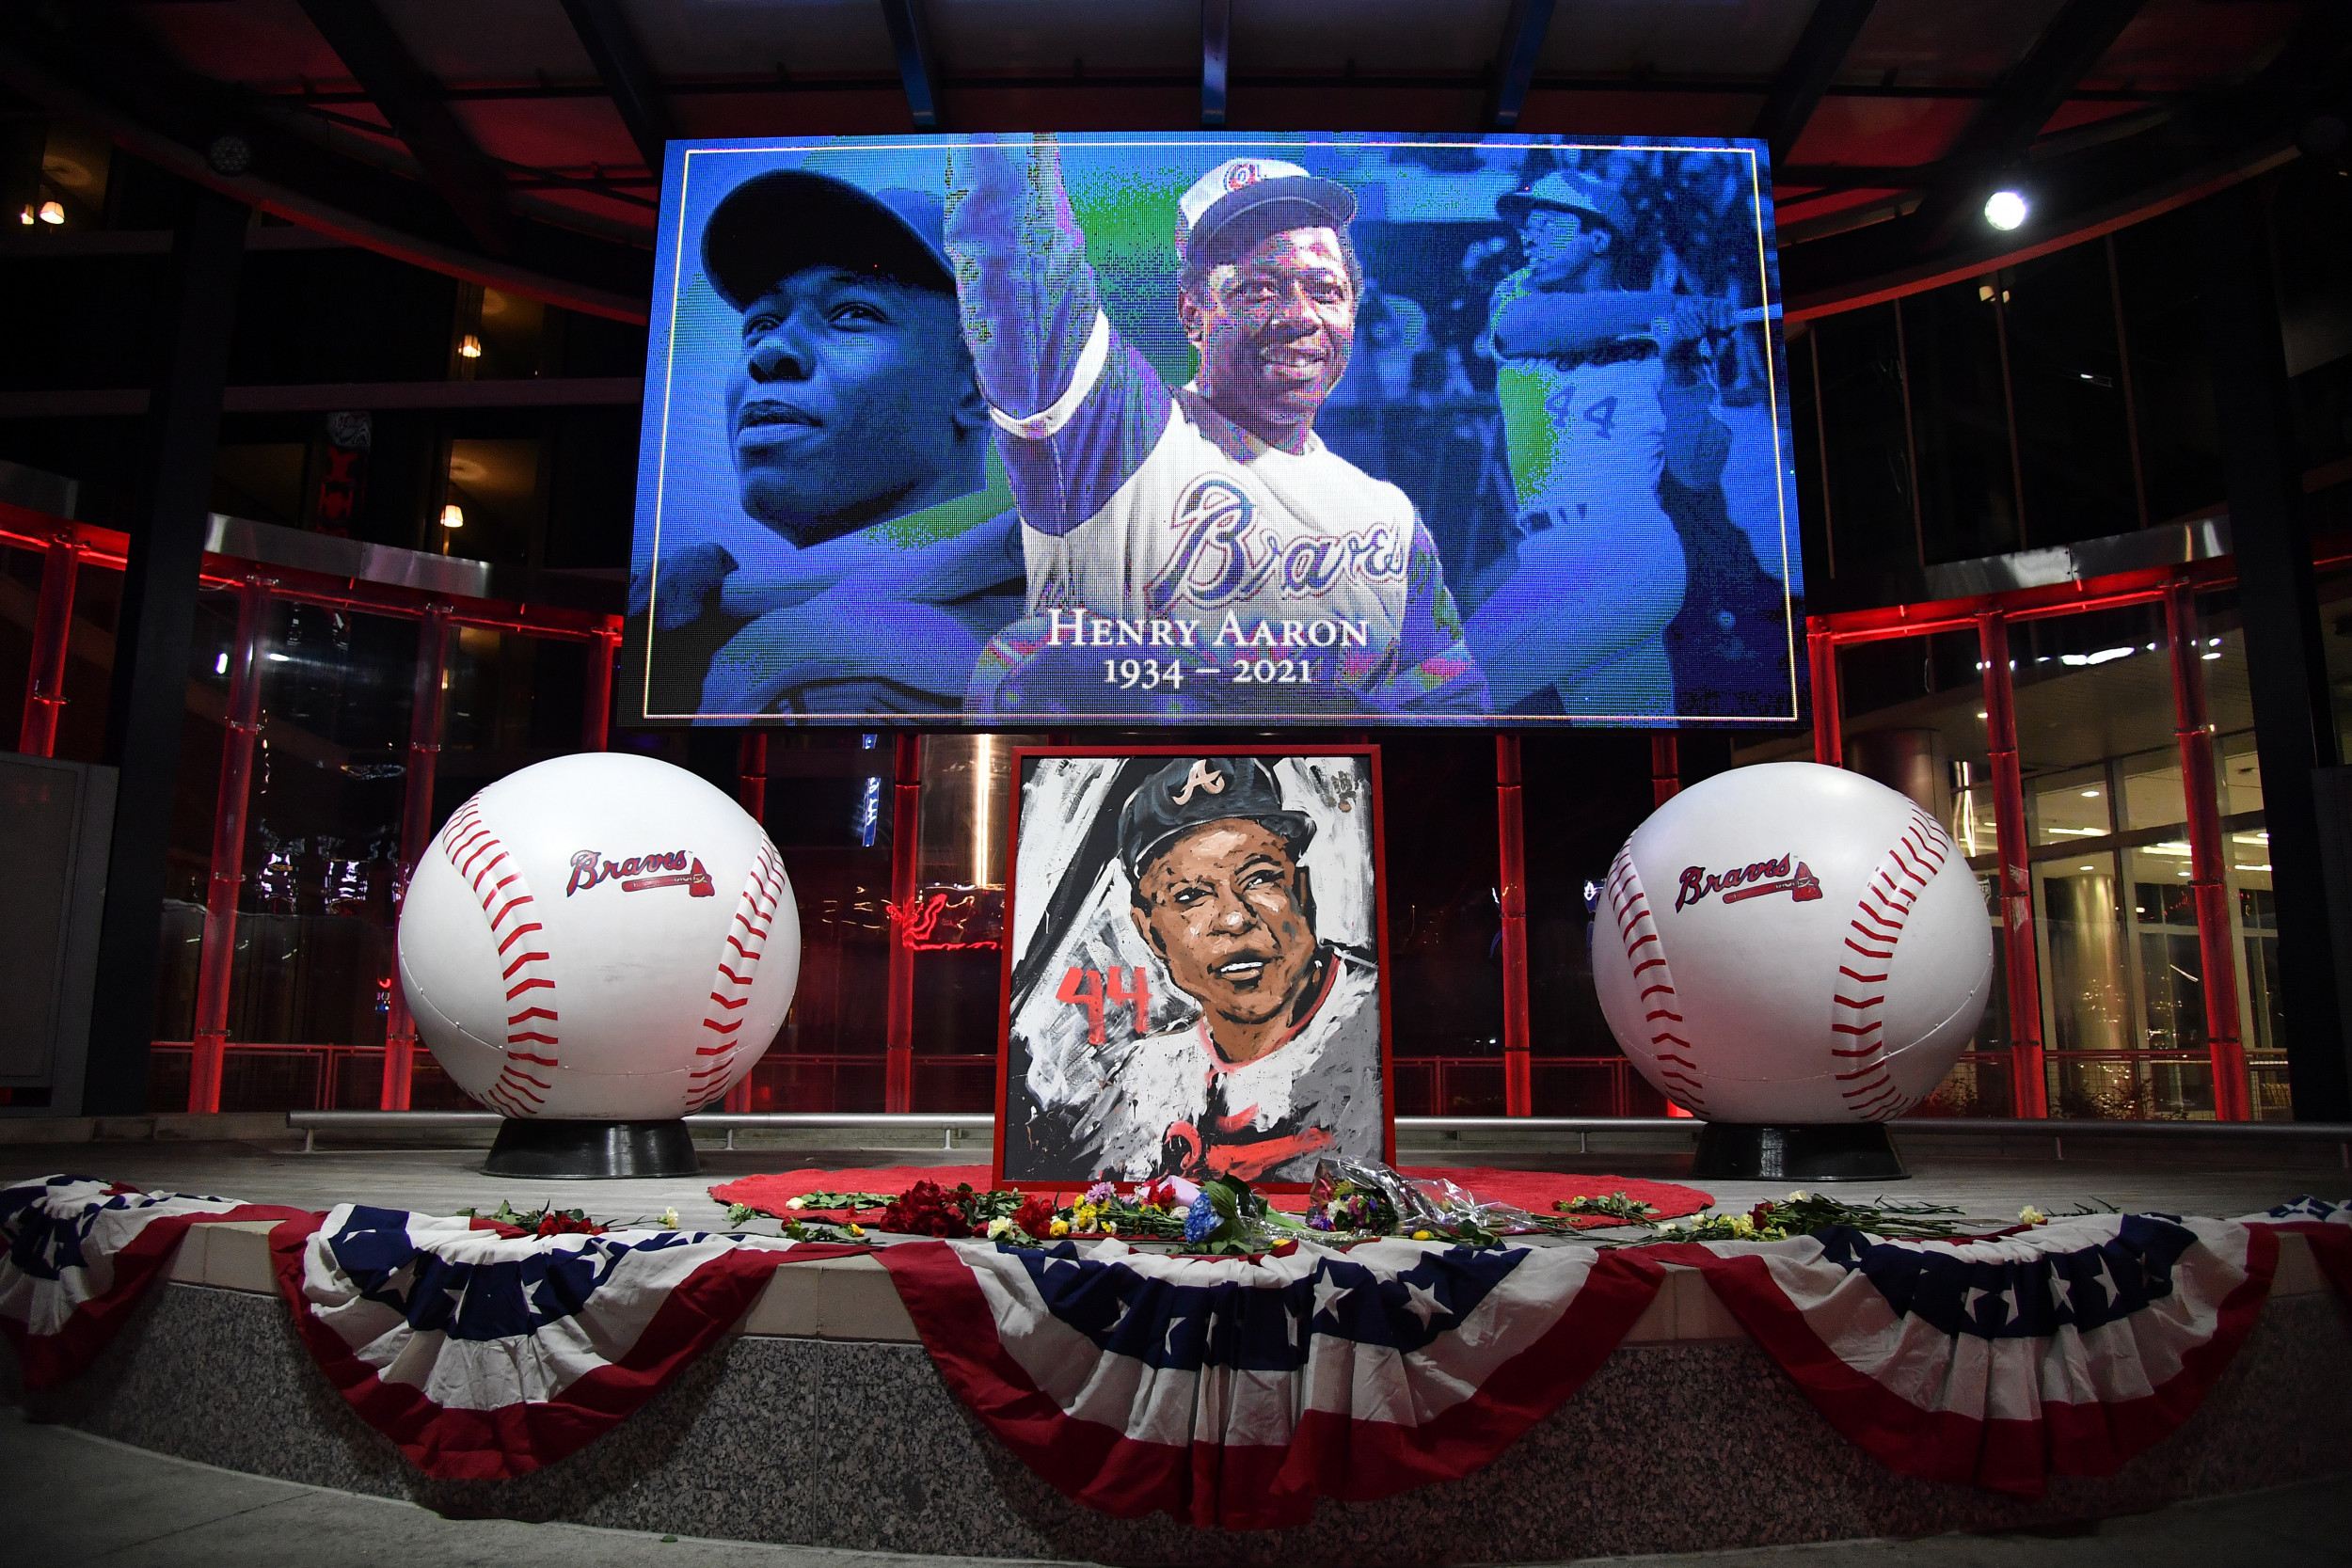 Health professionals hope Hank Aaron's death won't deter people from getting vaccinated